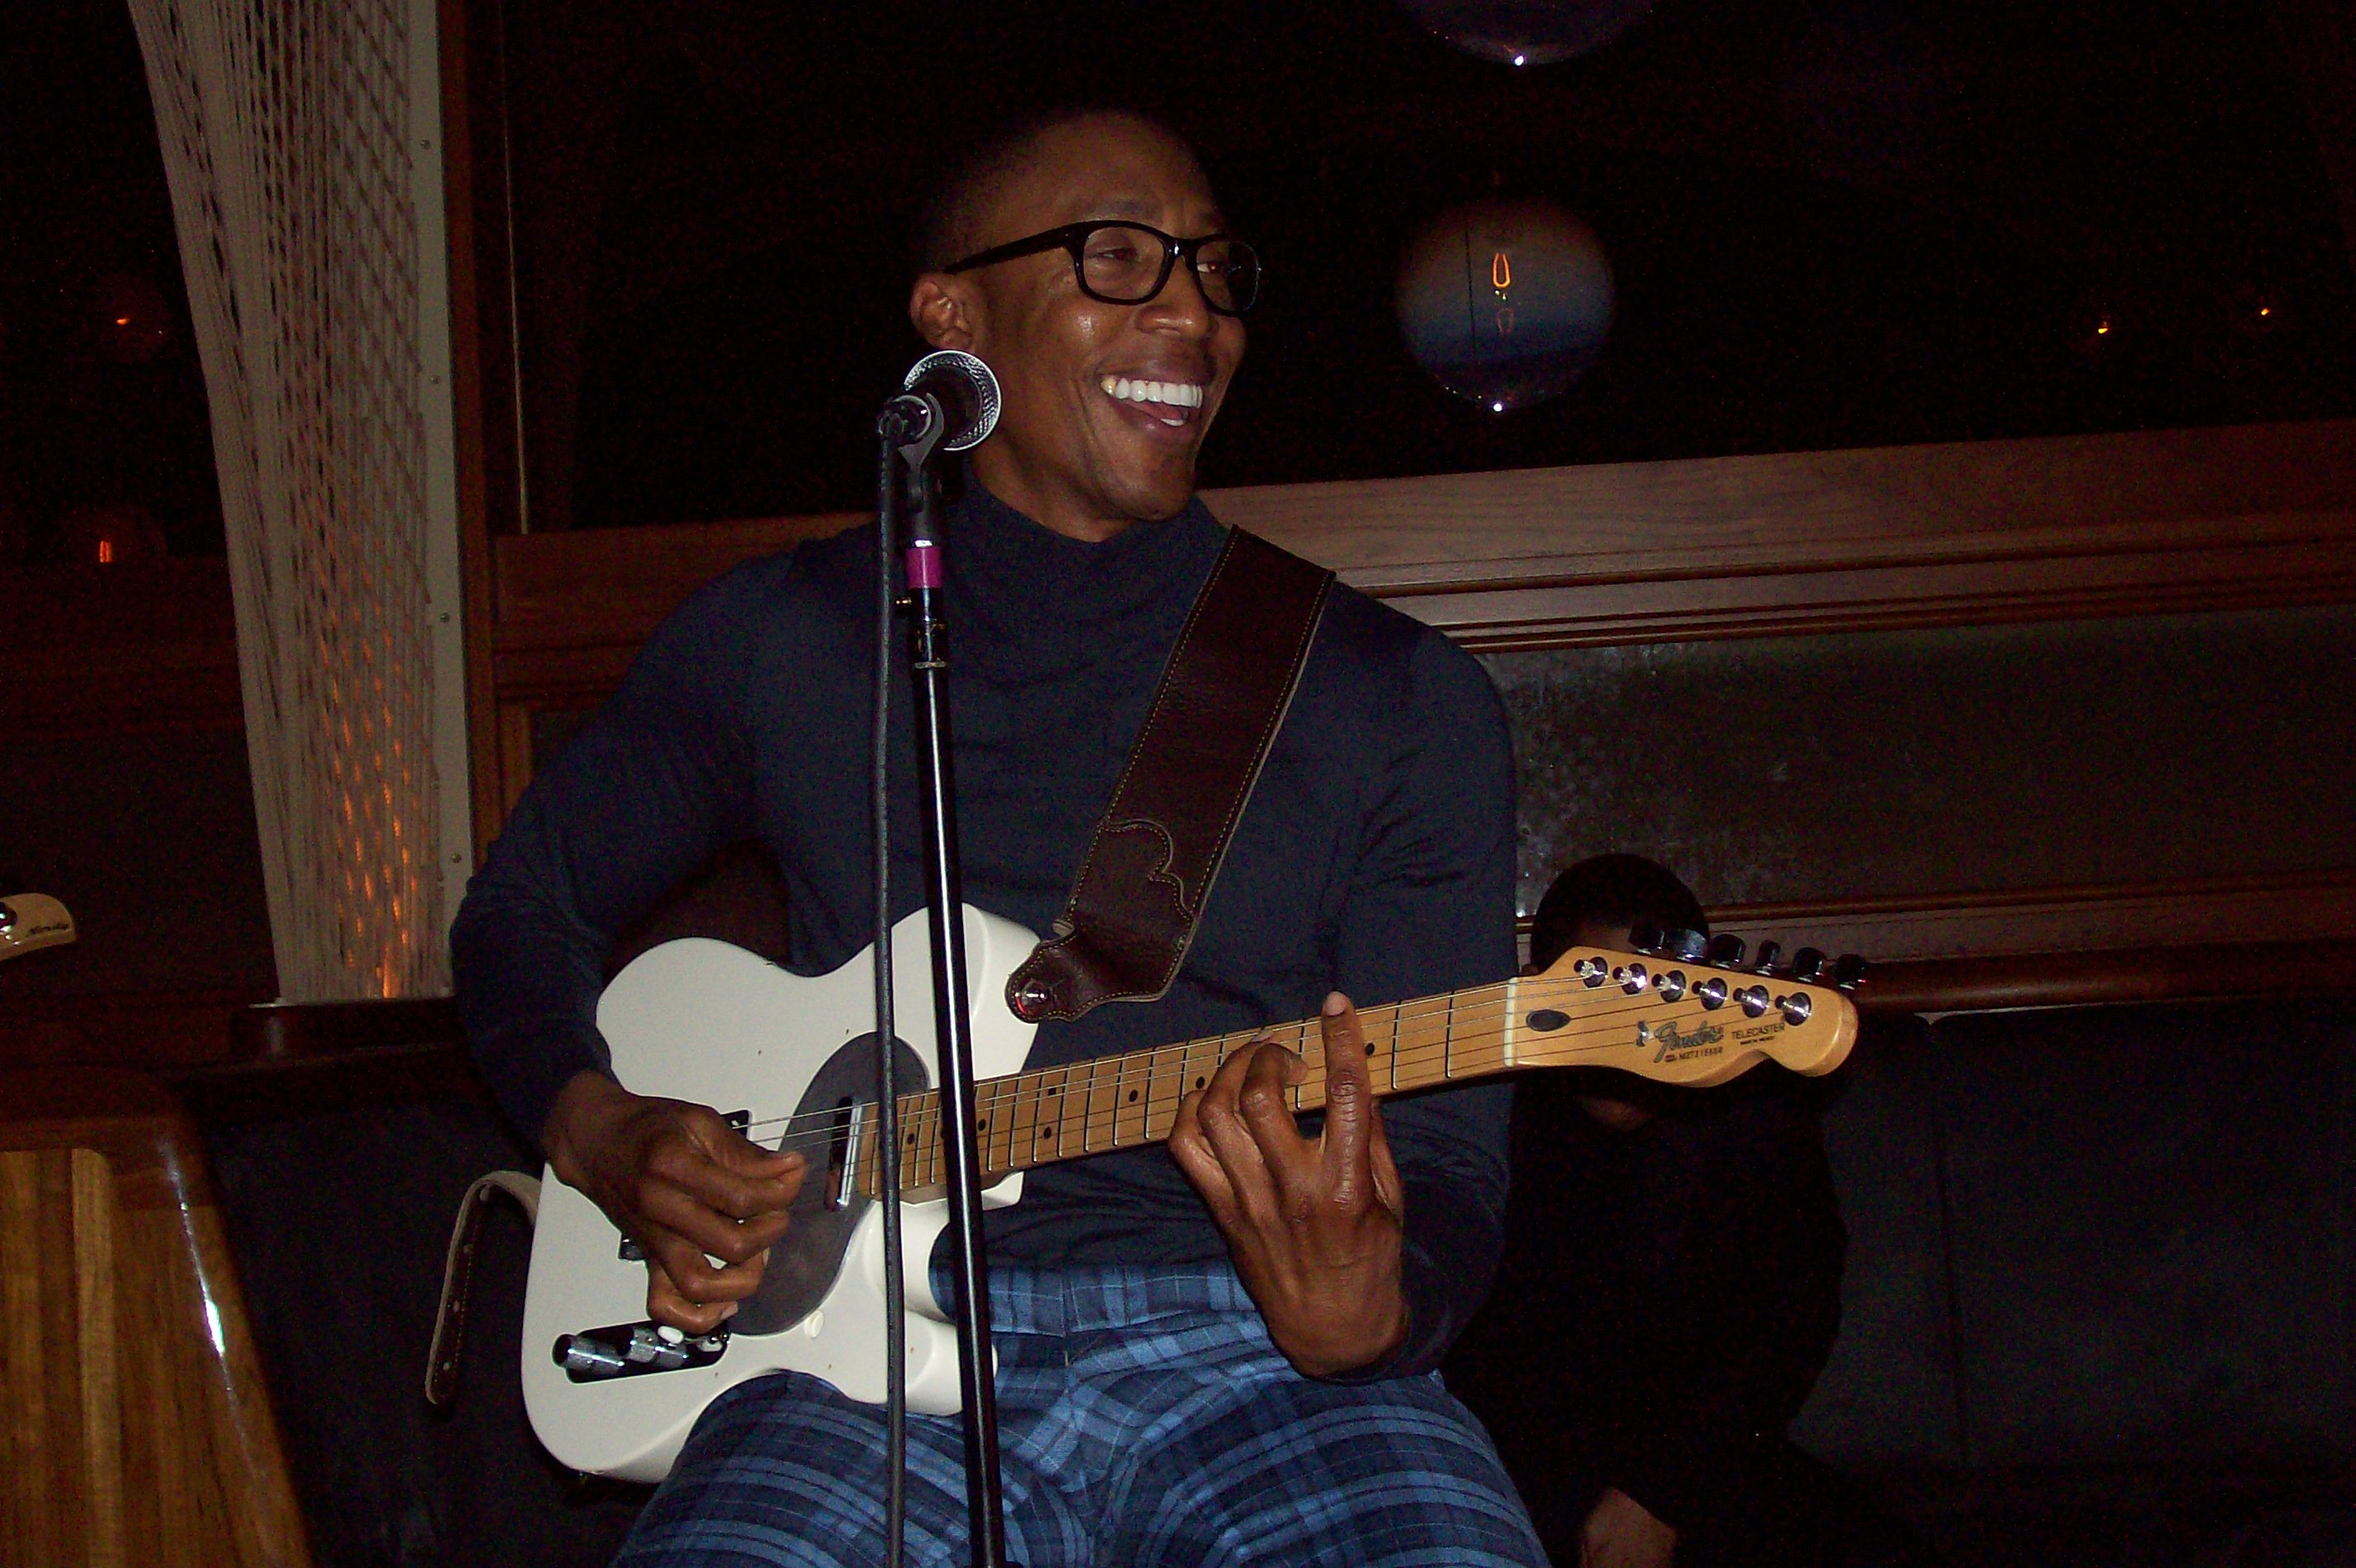 100 3320 Raphael Saadiq Rocks New York City; Readies New Material